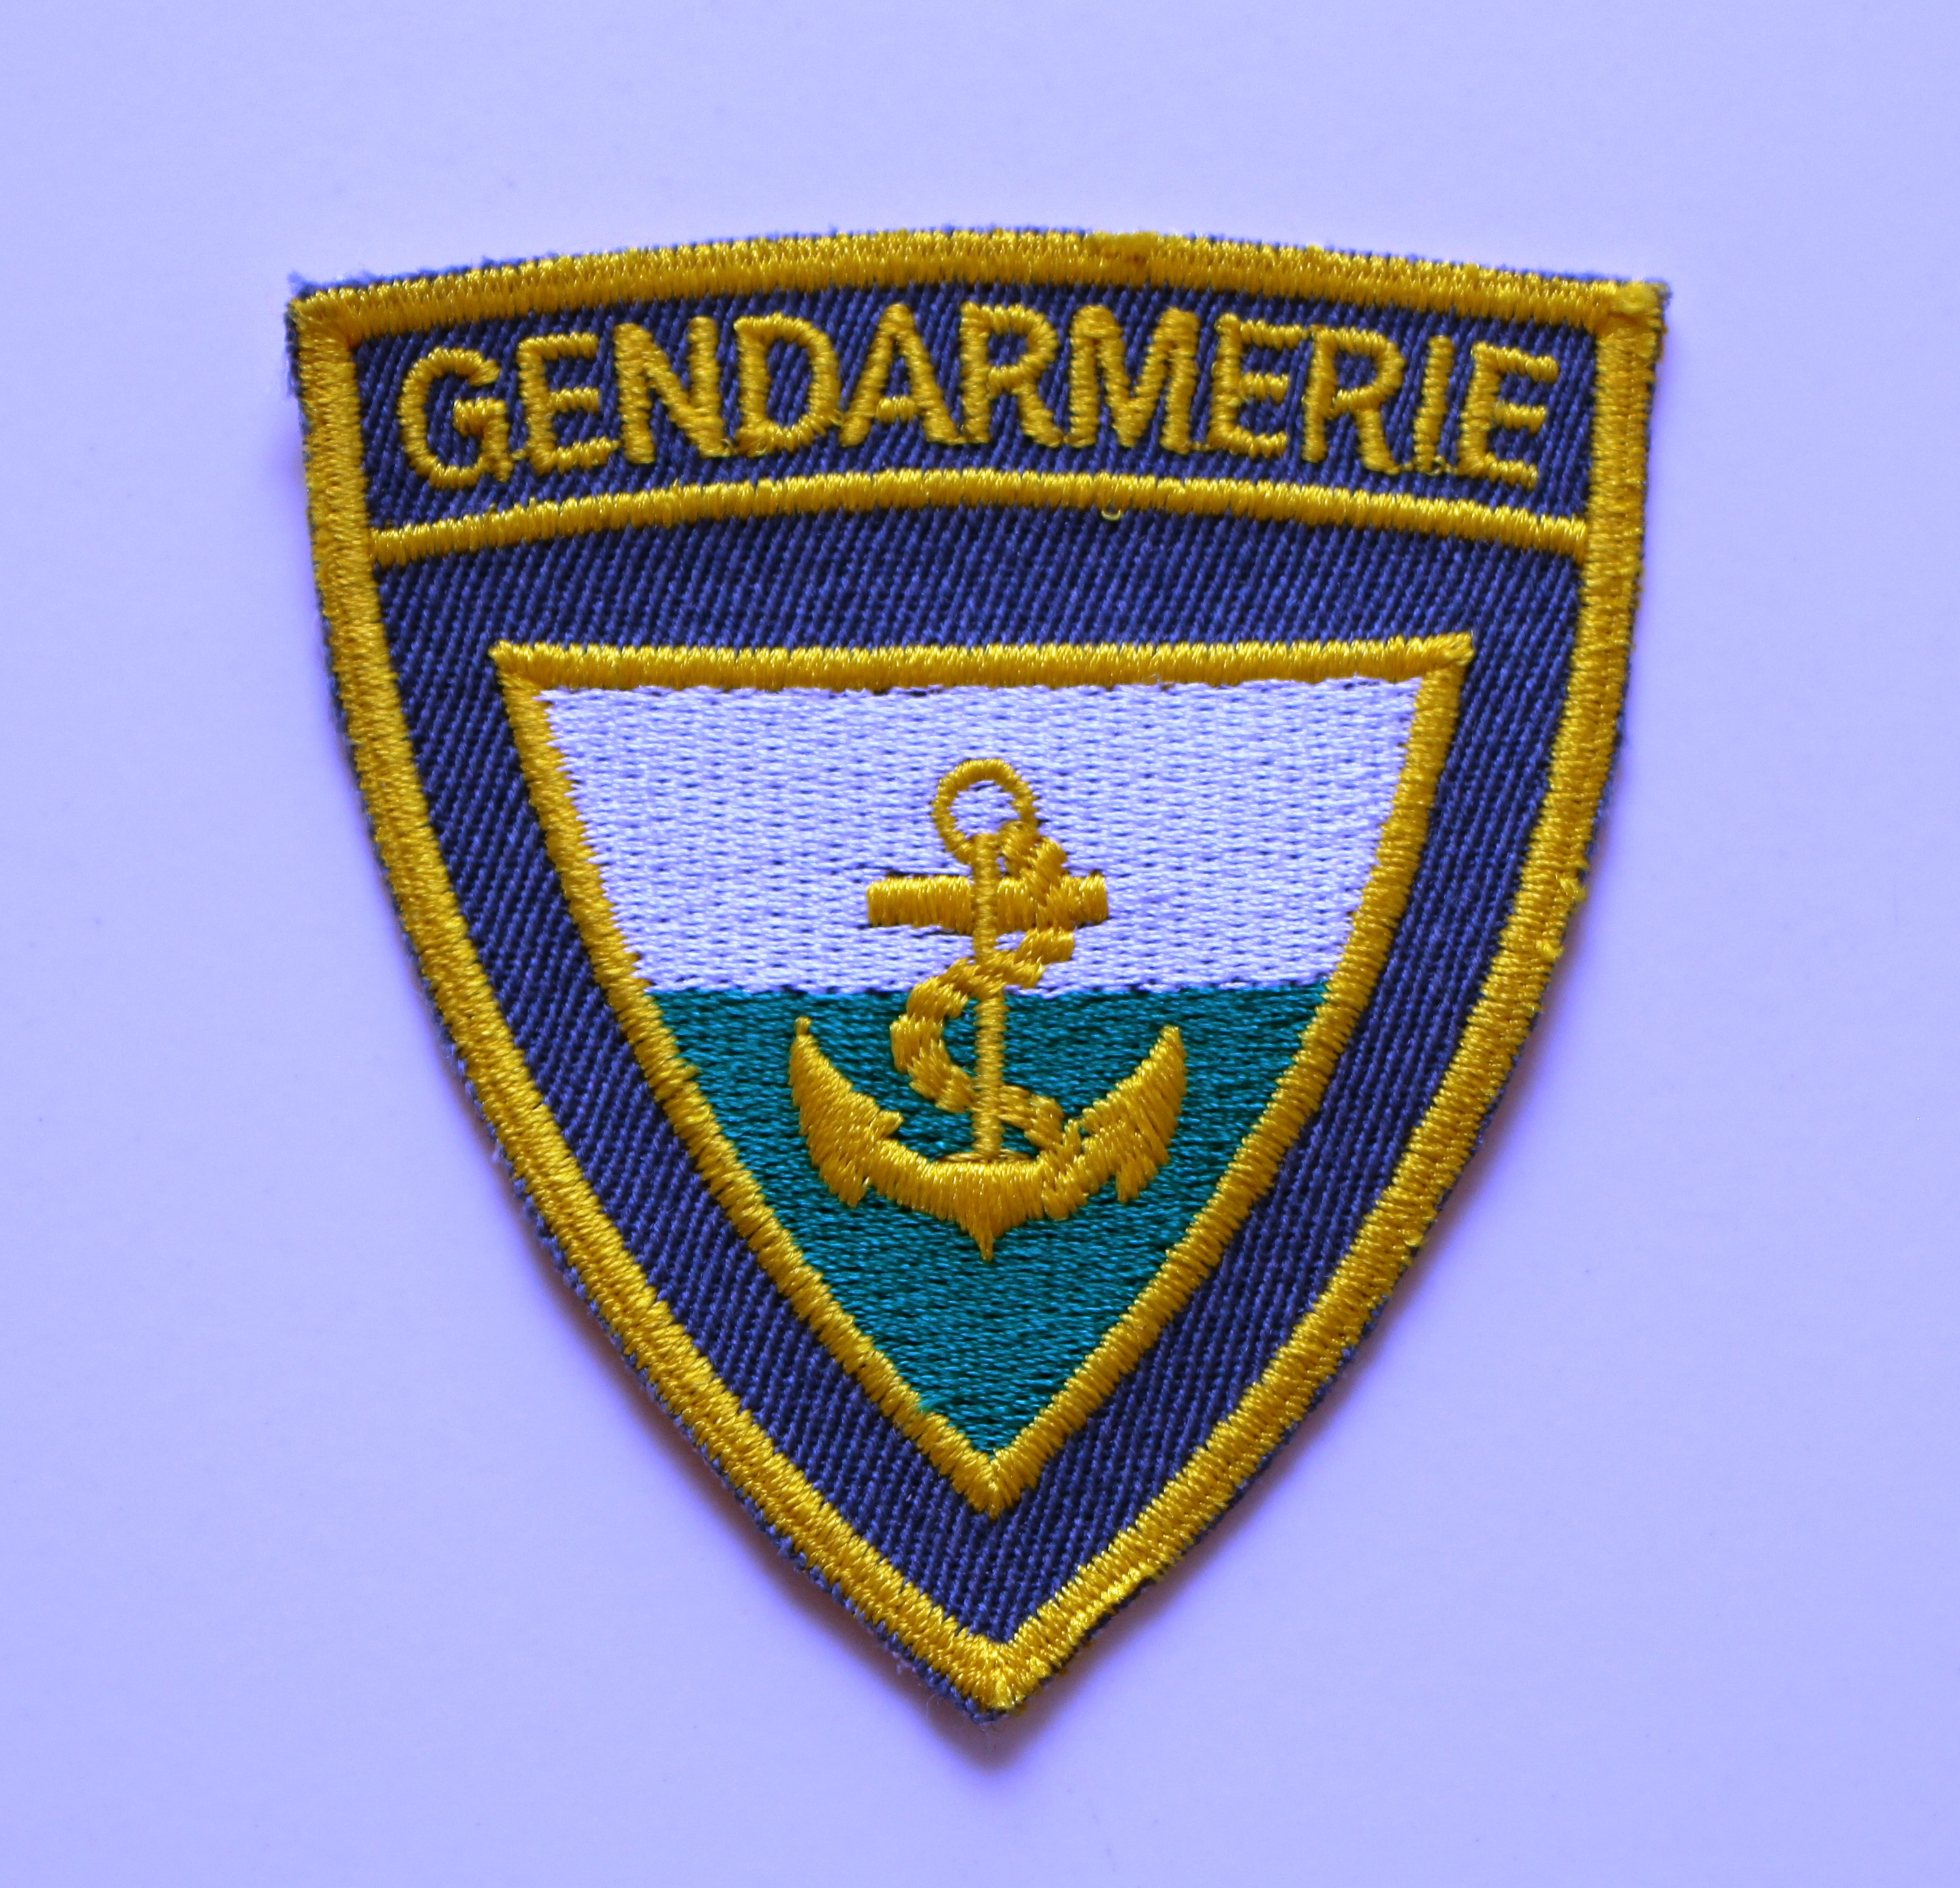 Brigade du lac - 2ème version